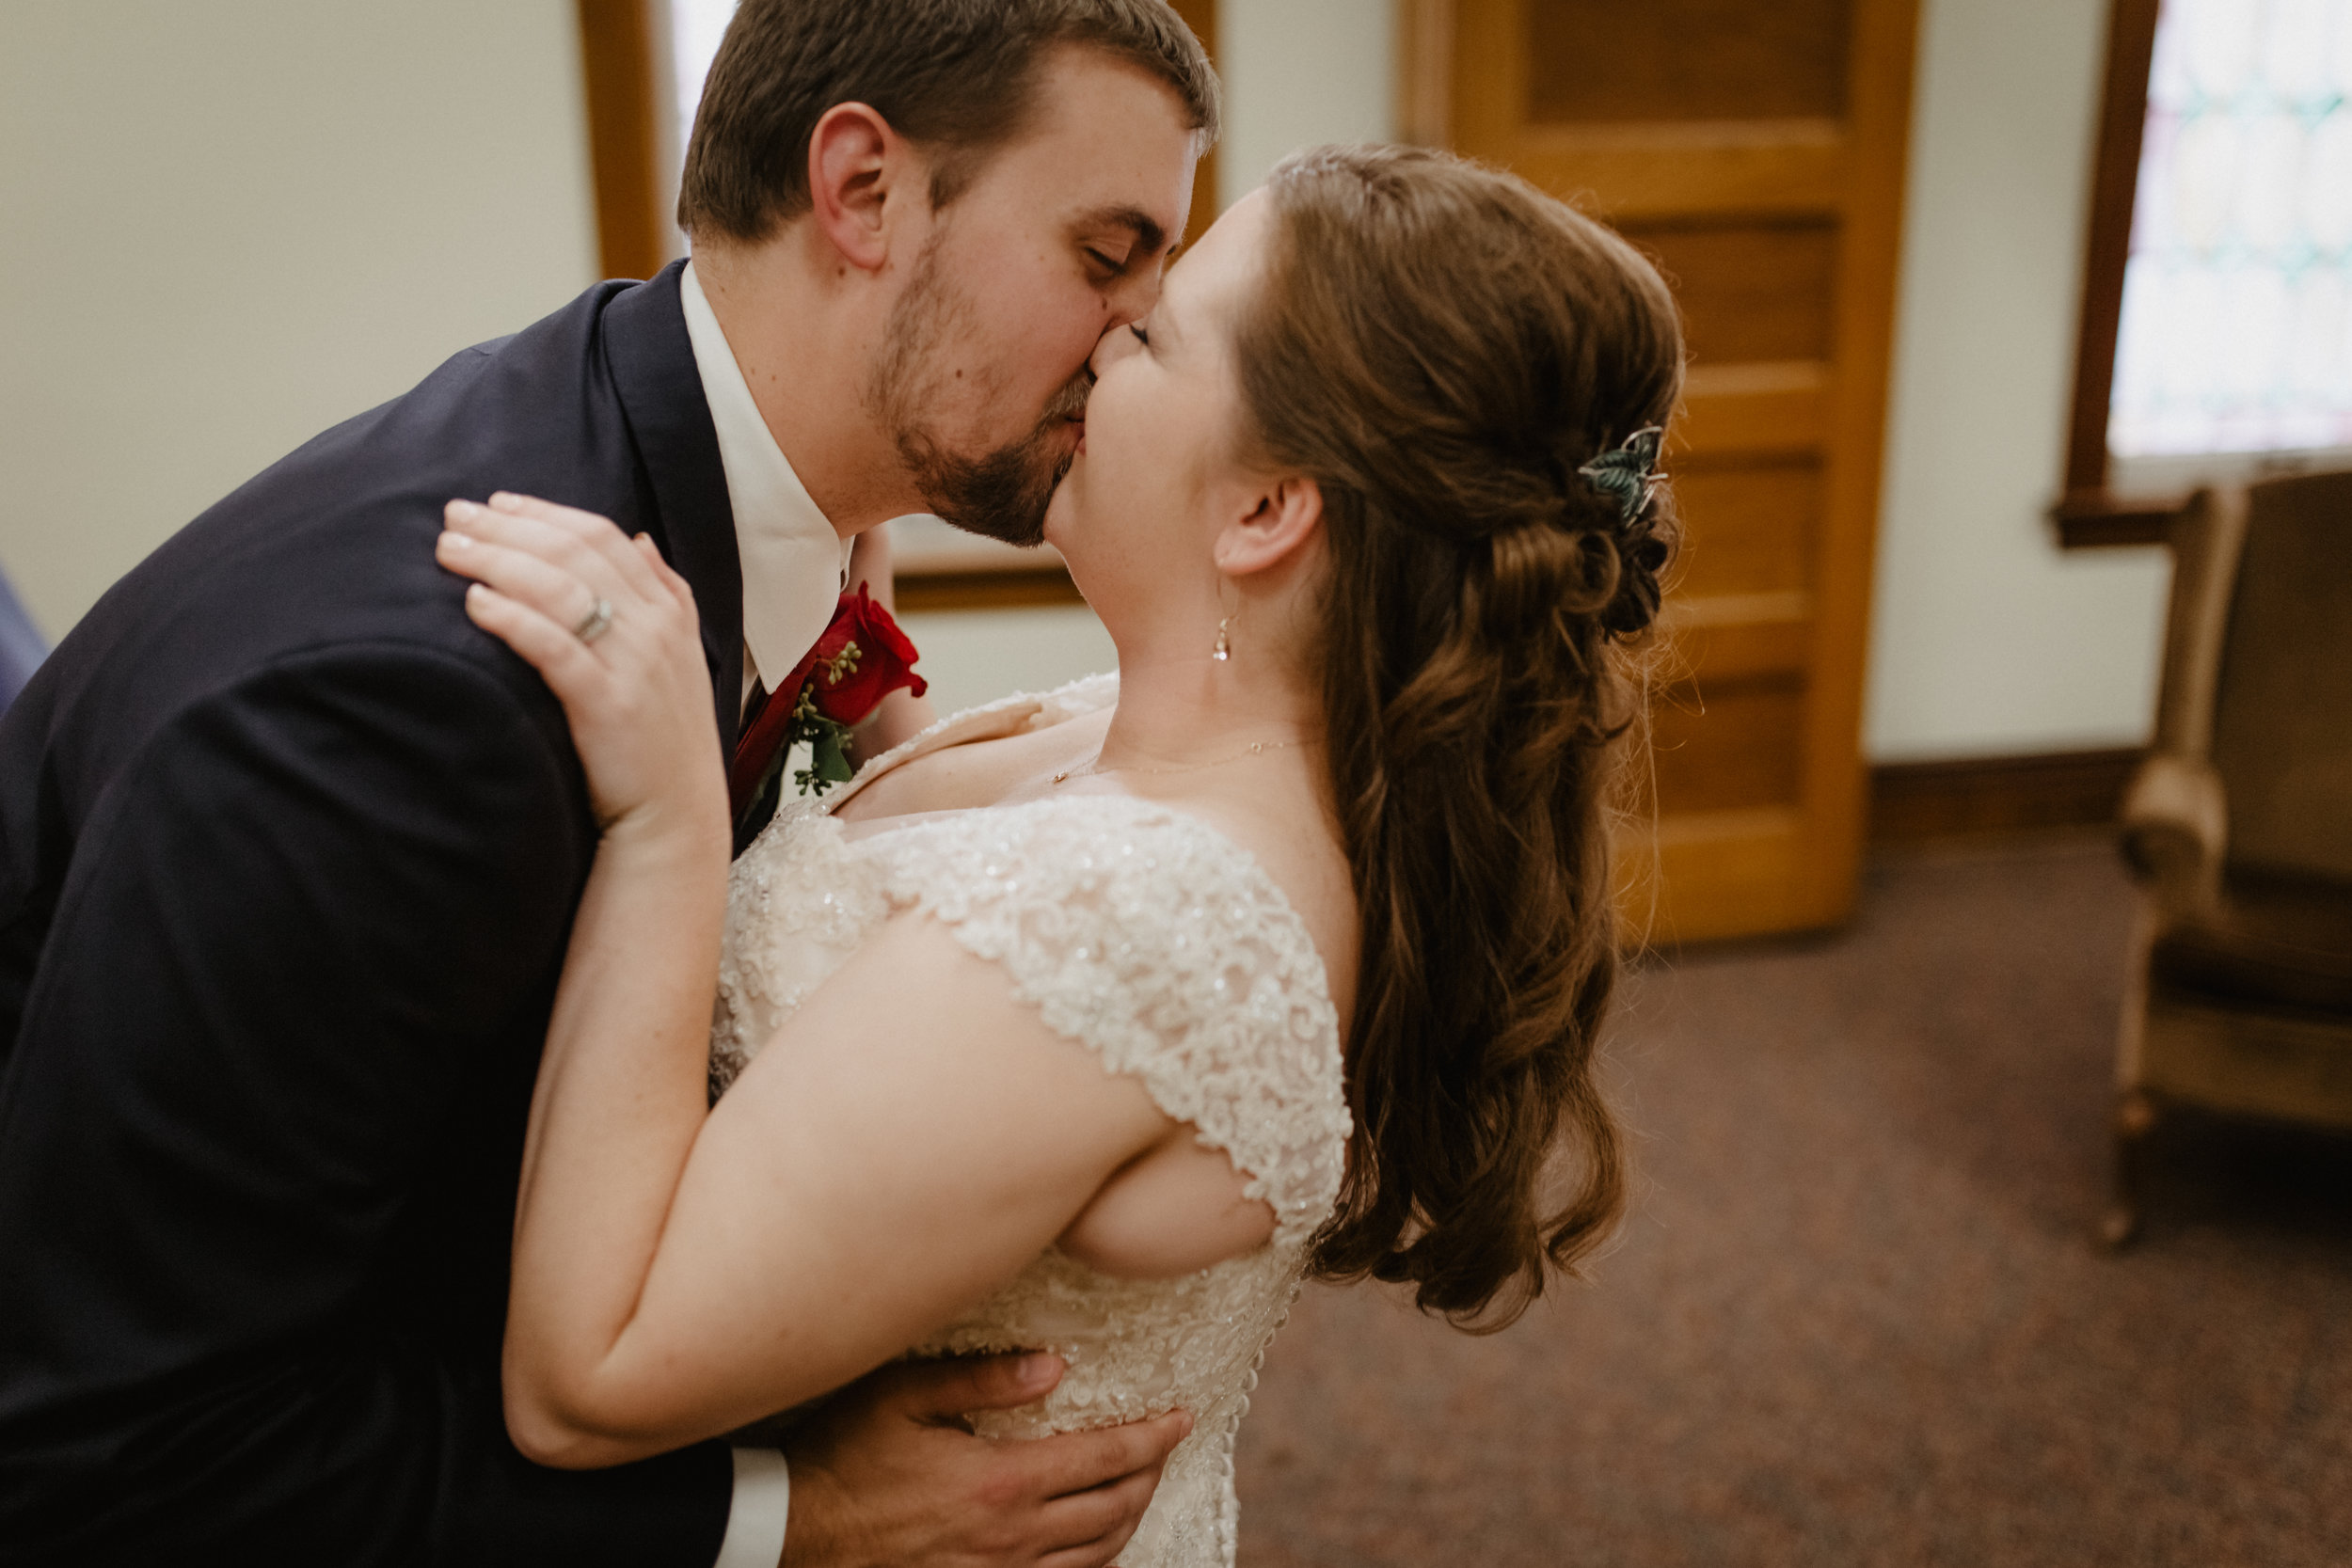 ShadowShinePictures-RachelRyan-Avery-Wedding-Photography-407.jpg